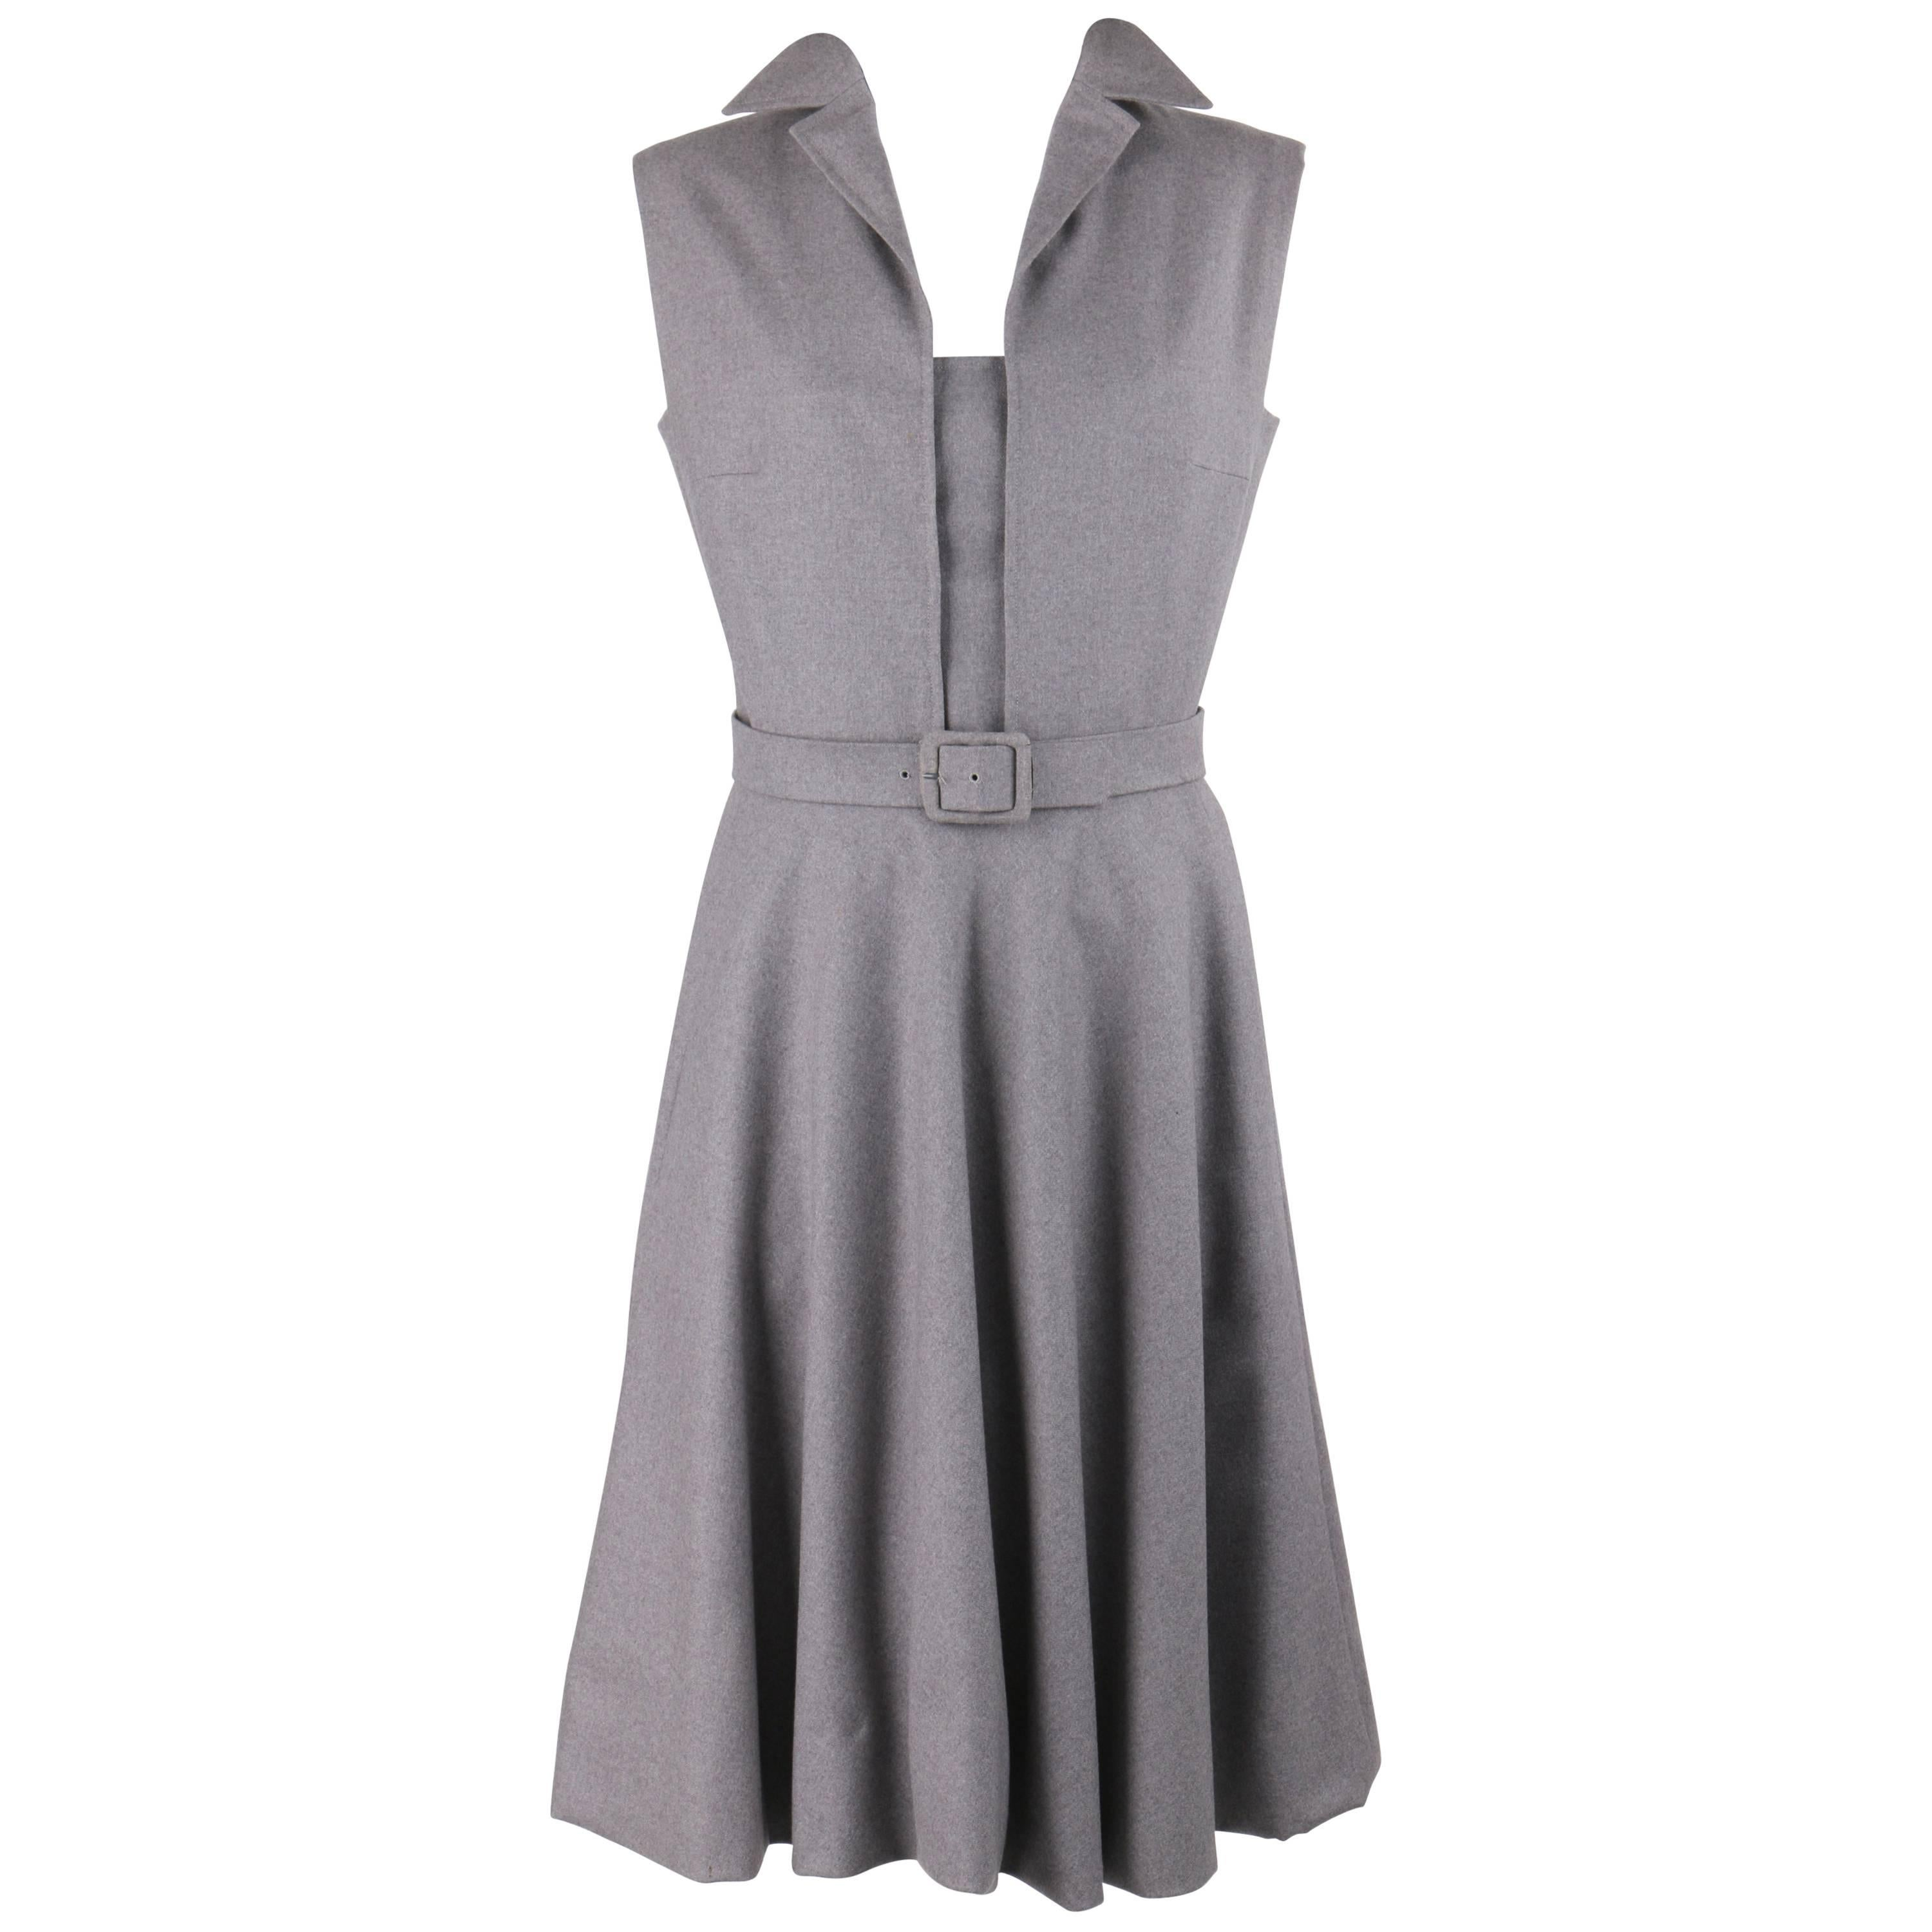 PAULINE TRIGERE c.1980's Gray Wool Extended Shoulder Belted Day Dress